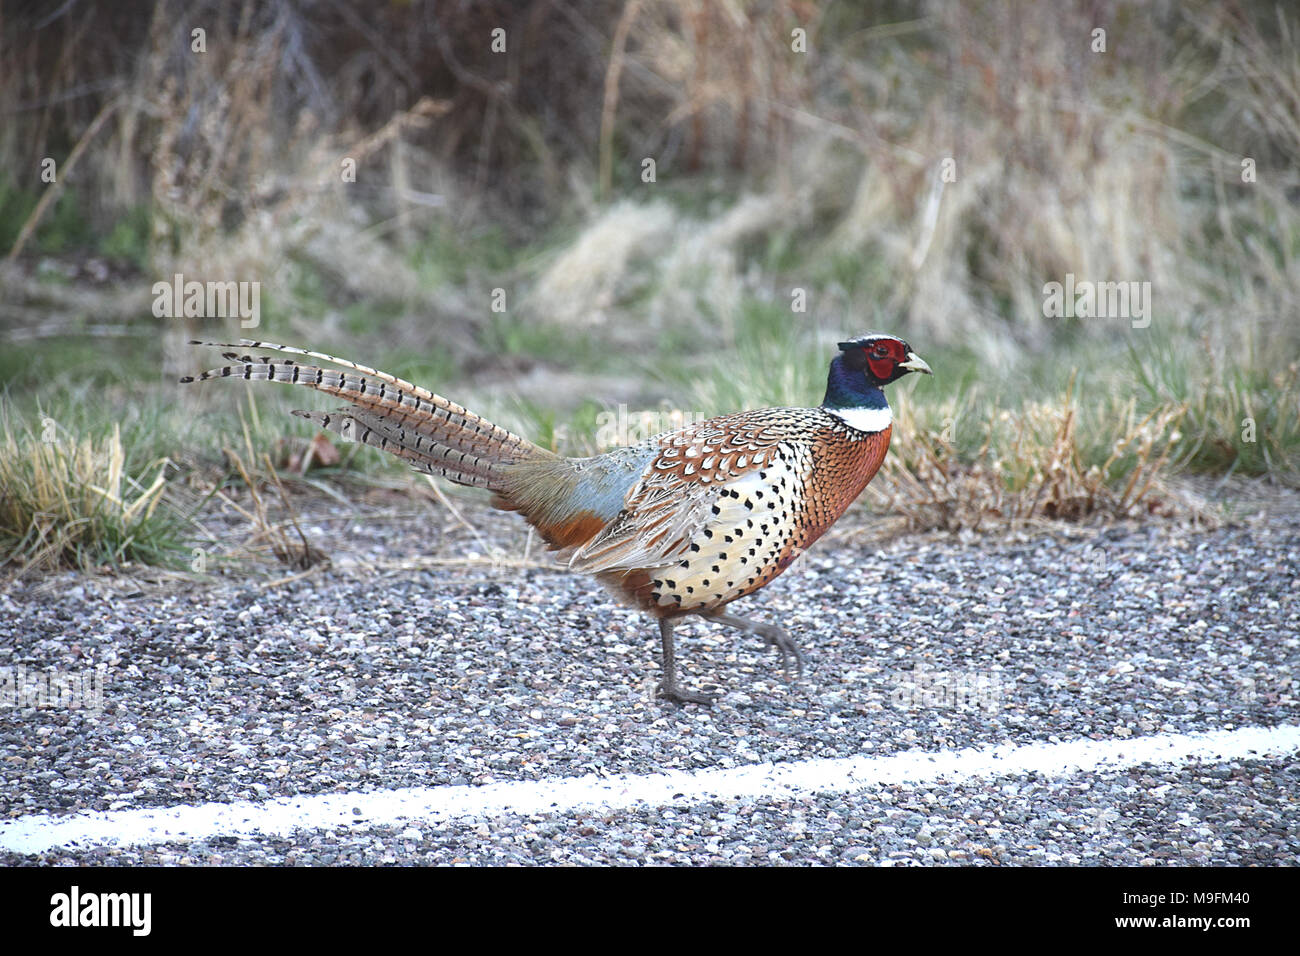 A ring-necked pheasant on the roadside - Stock Image